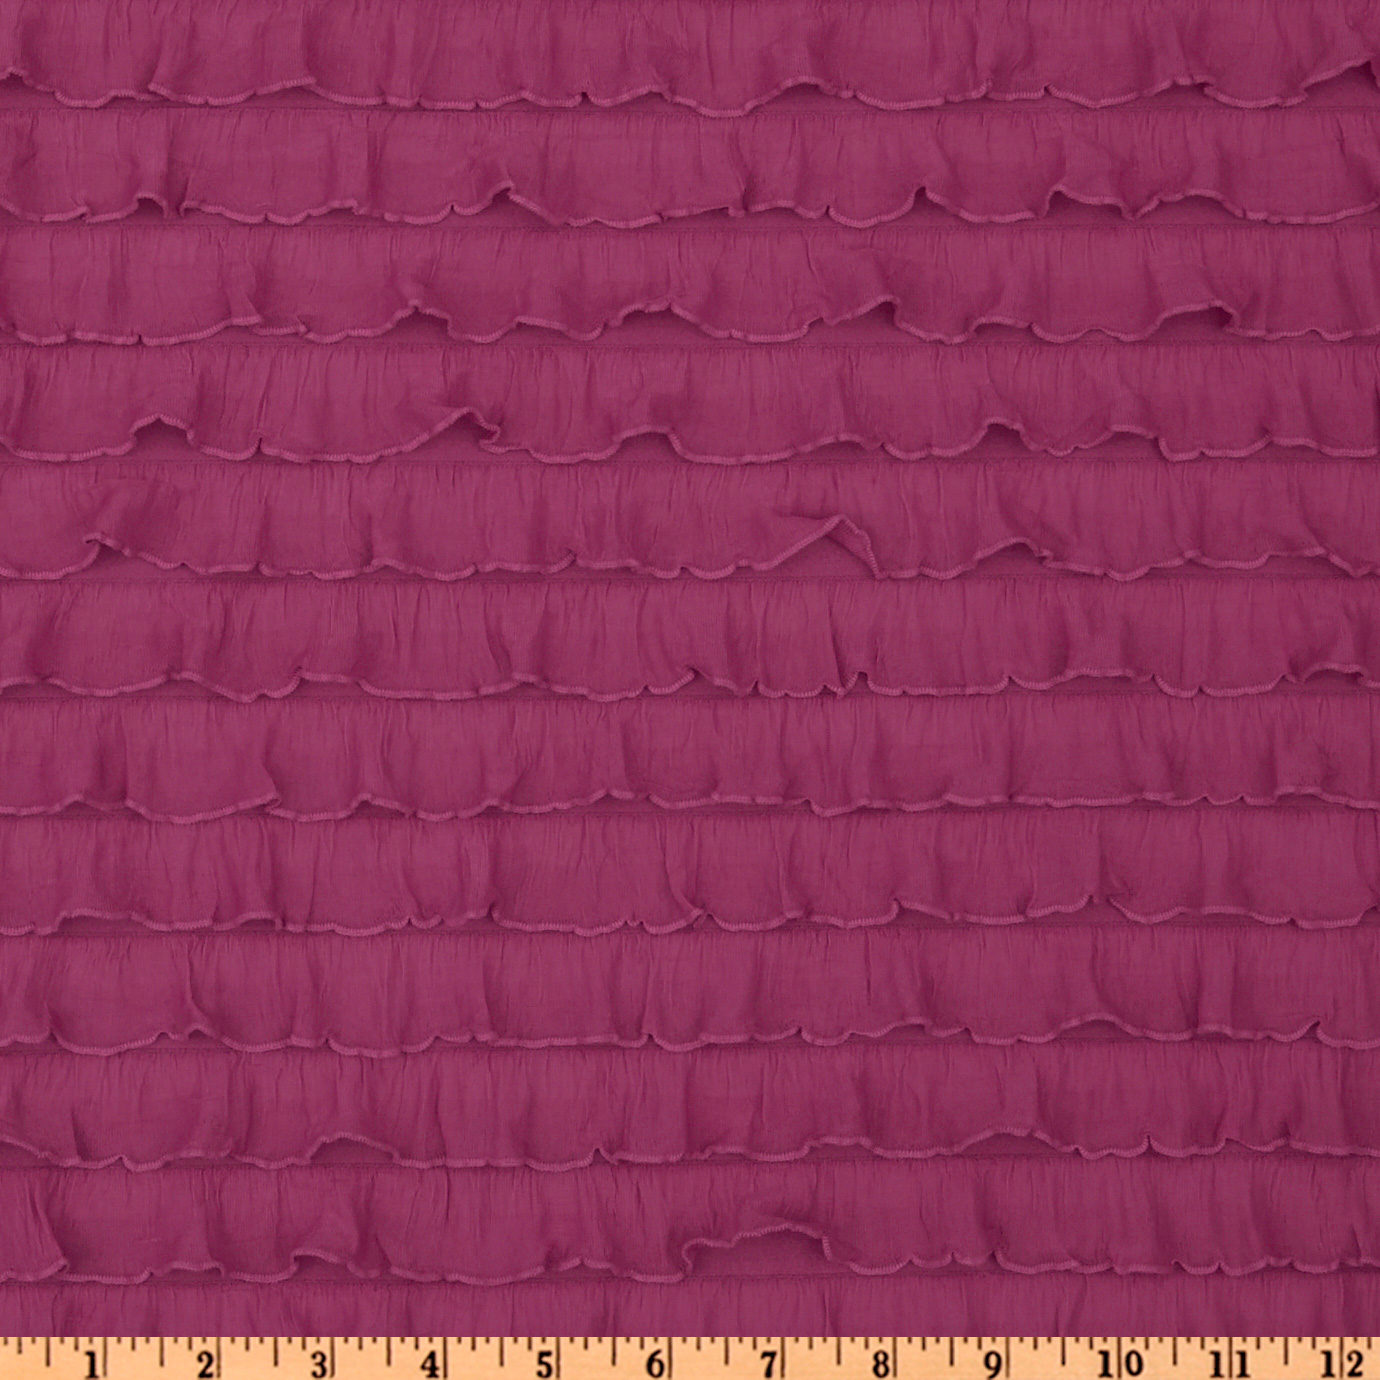 Stretch Ruffle Knit Fuchsia Fabric